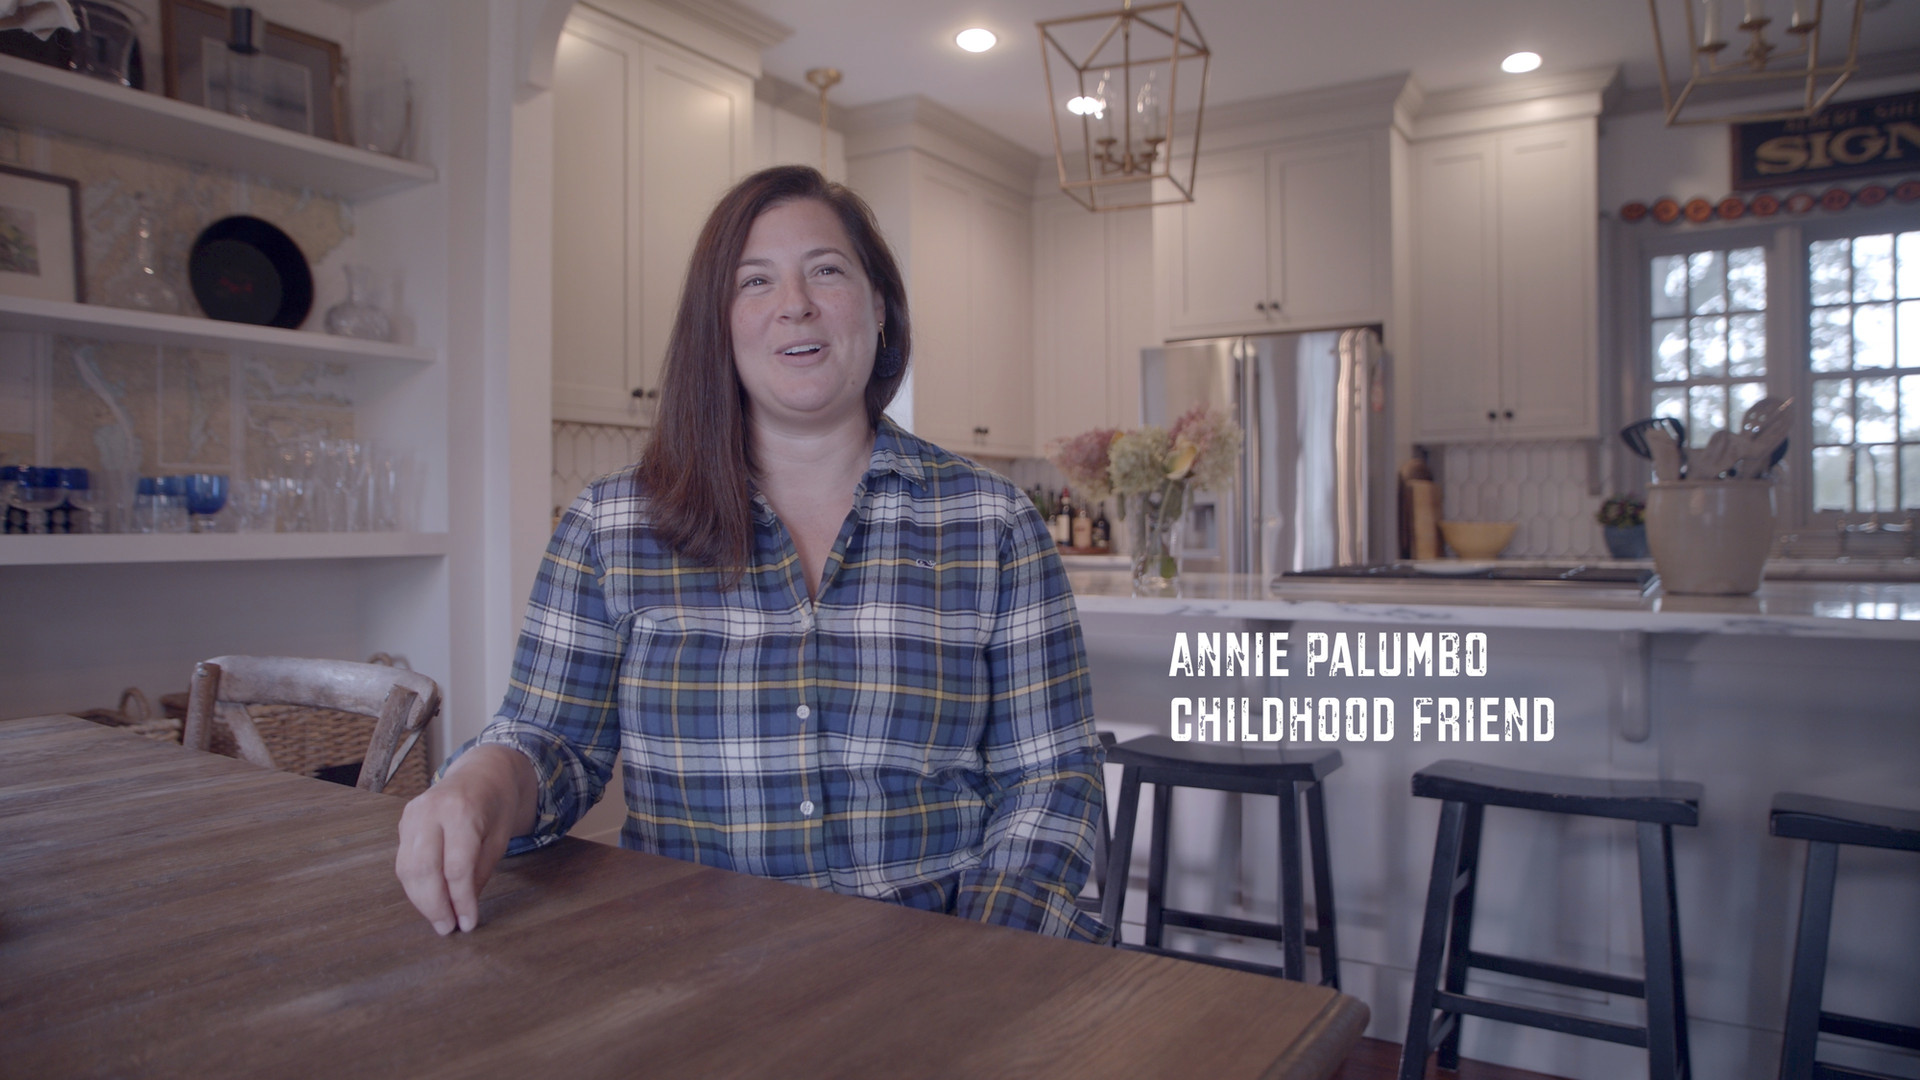 """This is my friend Annie Palumbo. We grew up together in Fall River, Massachusetts. At our 1st grade graduation her father brought in a VHS camera to film the ceremony. During graduation each student was asked which profession they wished to pursue. Down the line they went. The answers were mixed. Lawyer, doctor, police officer, veterinarian, etc. When turn came I was so nervous, but had decided I would share my dream. """"What do you want to be when you grow up Marc?"""" """"I want to play professional football for the New England Patriots."""" The entire room erupted with laughter. I'm sure it was funny coming from a small boy who had no idea what that actually meant. However, I learned a very valuable lesson. Our greatest detriment is not setting a goal too high it's setting a goal too low. When people laugh at your goals take it as a positive. That means you're aiming high. Shoot for the things that other people say you can't have and go to work. This approach has nothing to do with proving yourself to others. It has everything to do with putting in the work, making the sacrifices, and following through. Thank you Annie for your life long friendship and sitting down with @monarchproductions to be a part of the @justakidfromfallriver film project. #508"""